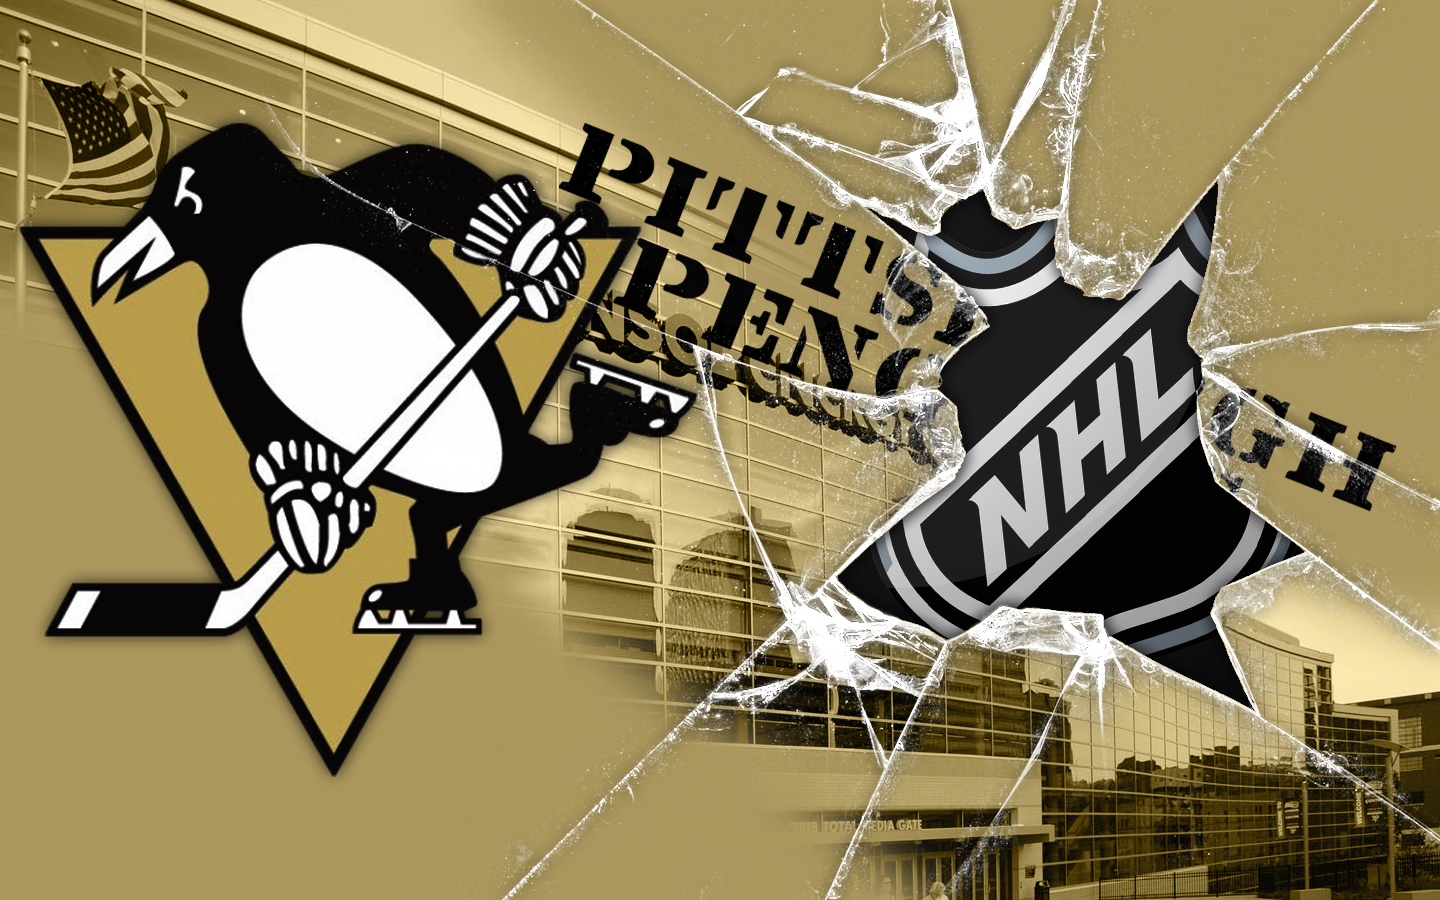 Penguins Backgrounds, Computers Pittsburgh, Penguins Wallpapers, Boston Bruins, Pittsburgh Penguins 0, Penguins 2014 15, Pittsburgh Penguins W, Pittsburgh ...